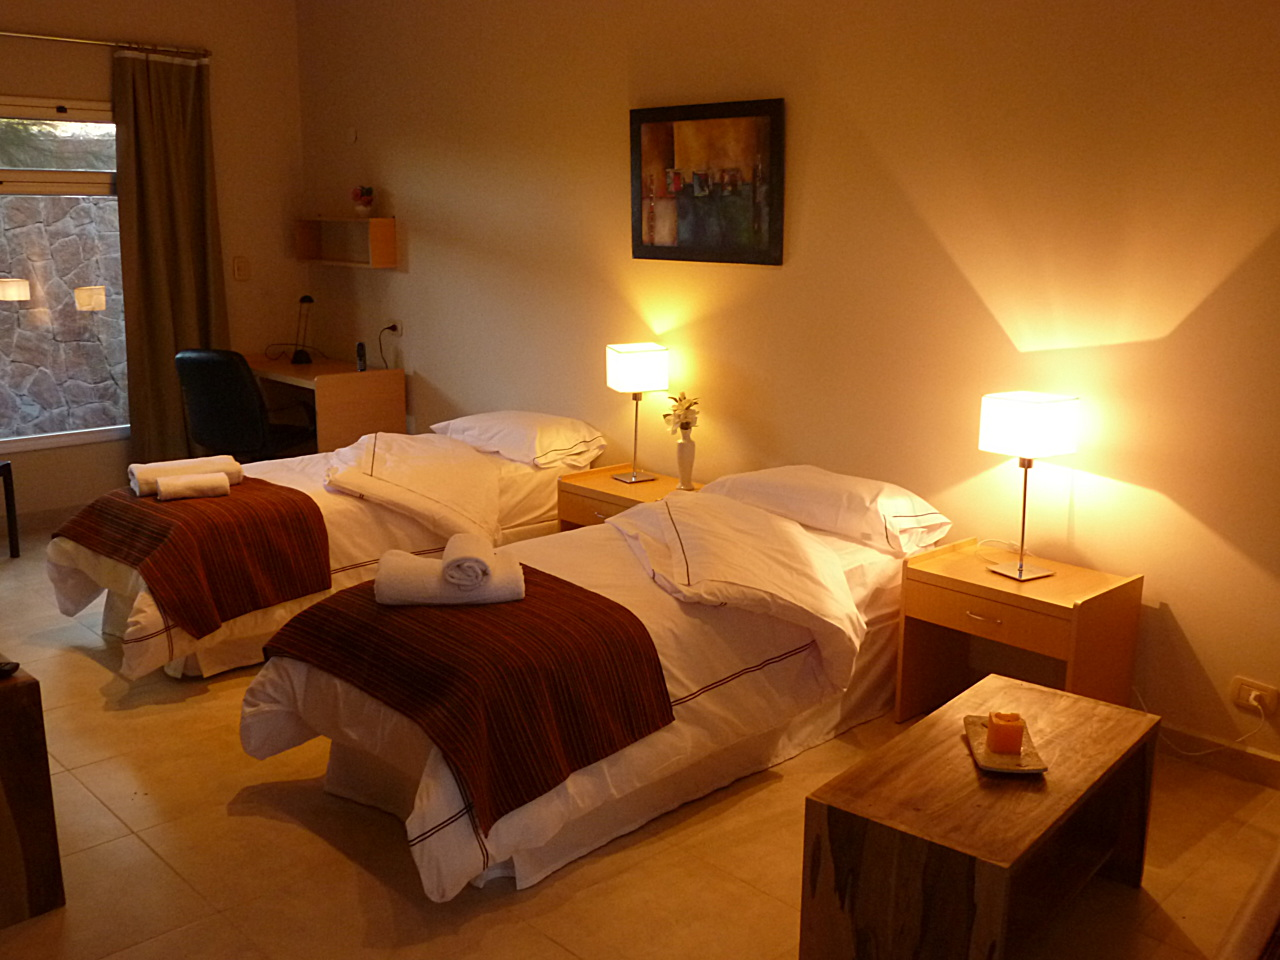 room suites 2 people twin beds